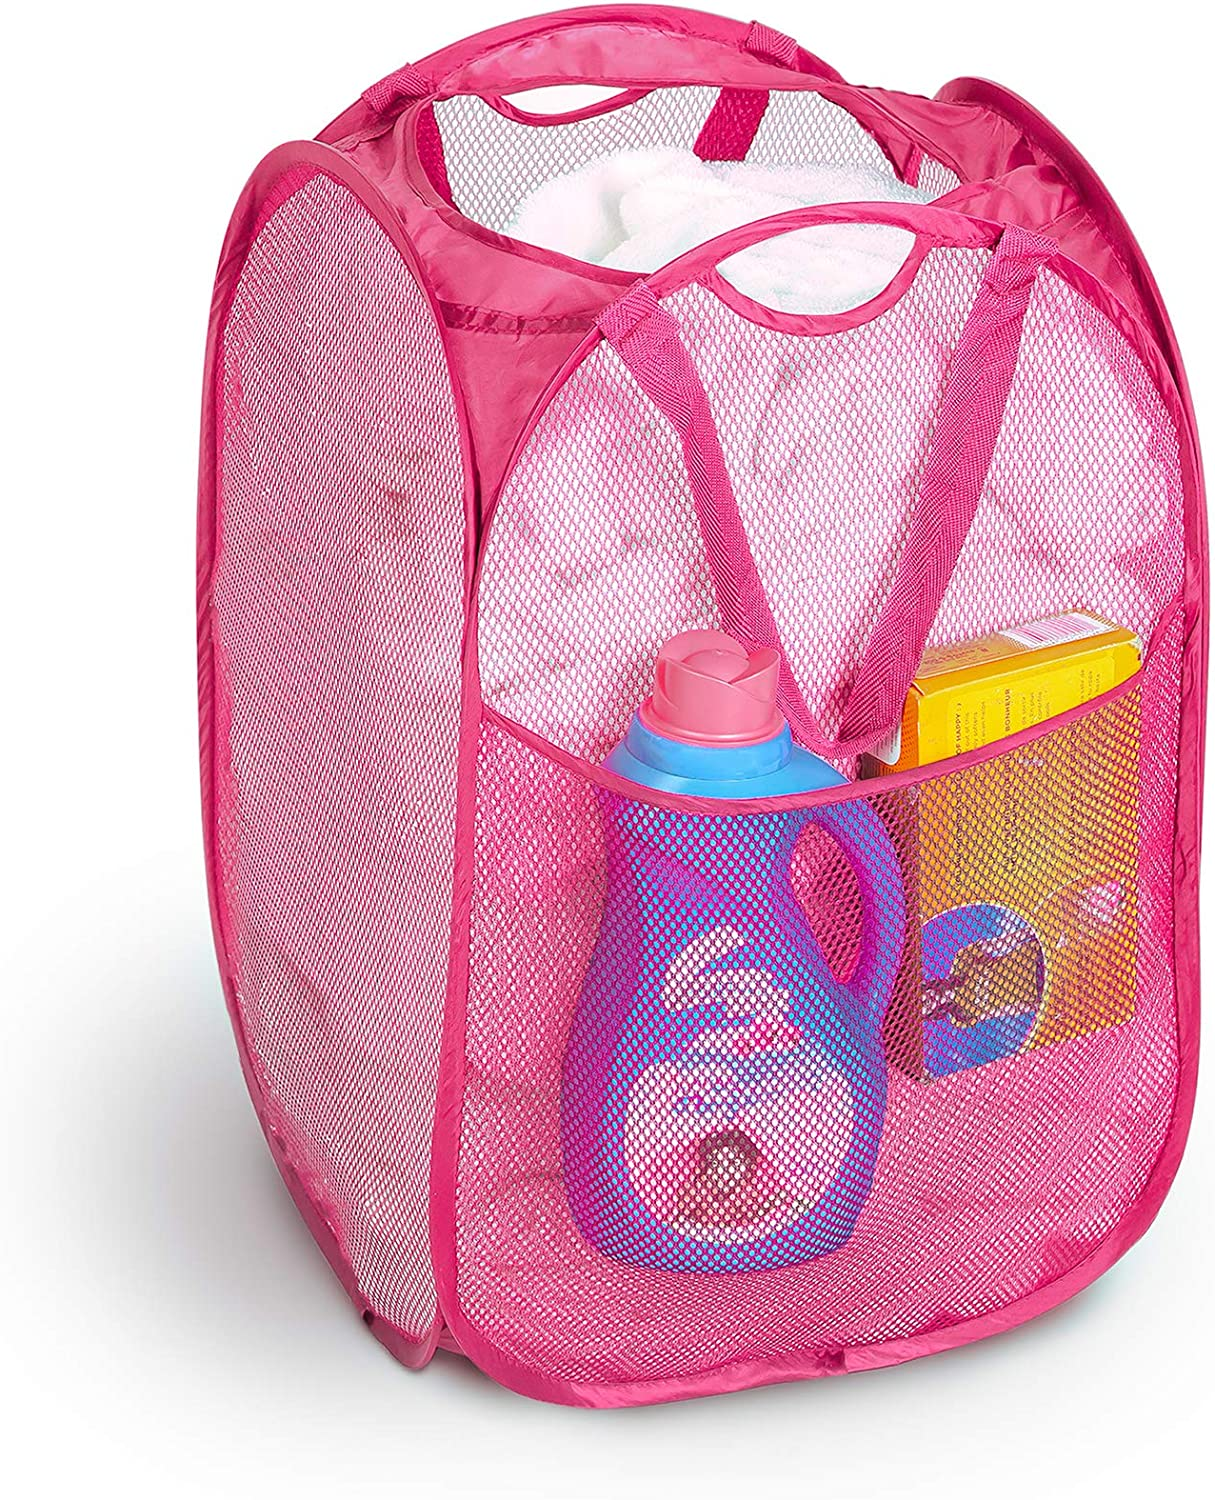 Smart Design Deluxe Mesh Pop Up Square Laundry Hamper w/ Side Pocket & Handles - VentilAir Fabric Collapsible Design - for Clothes & Laundry - Home - (Holds 2 Loads) (14 x 23 Inch) [Pink]